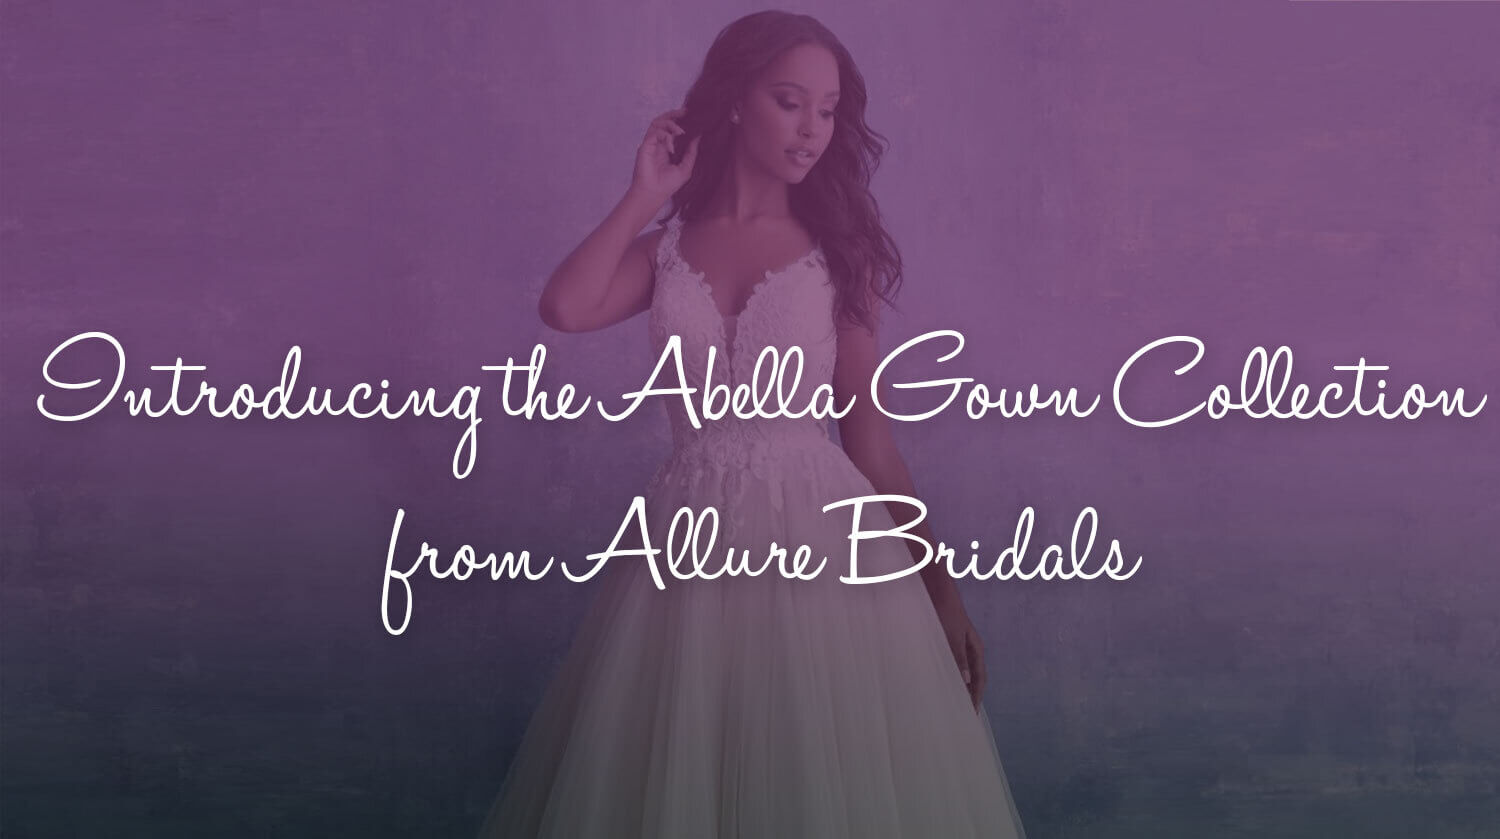 Abella gown collection from Allure Bridals